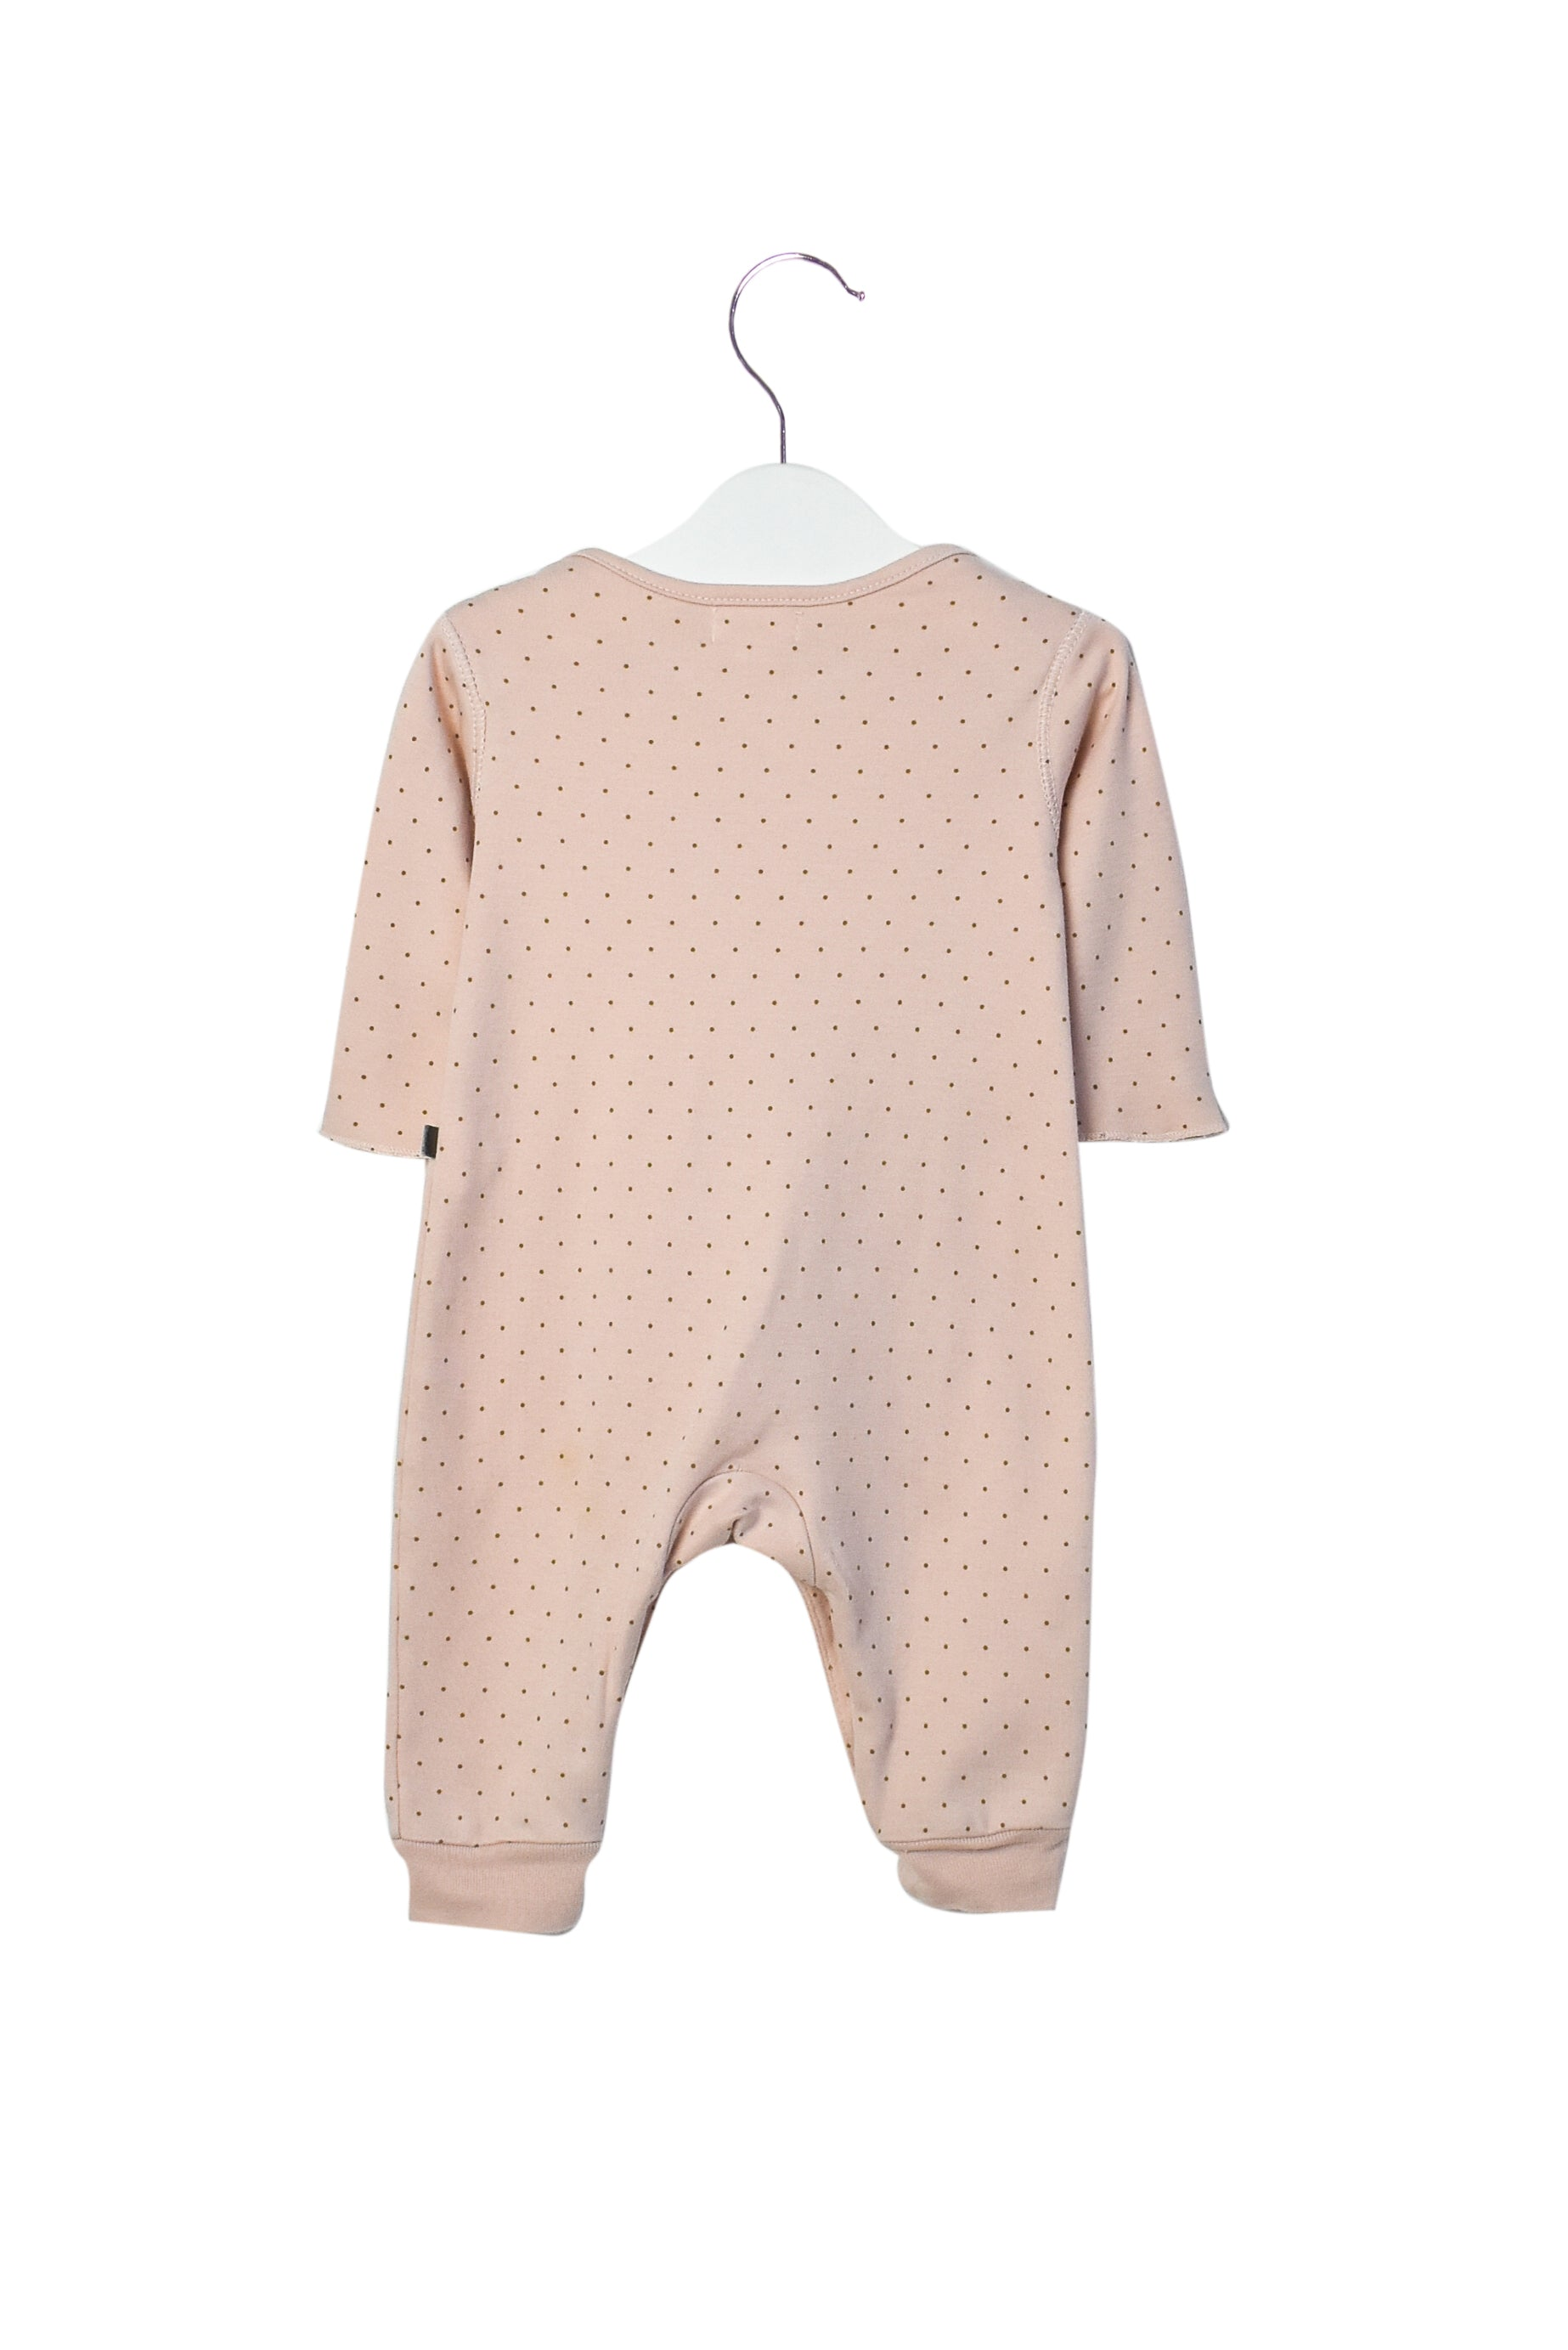 10006884 Oeuf Baby~Jumpsuit 0-3M at Retykle